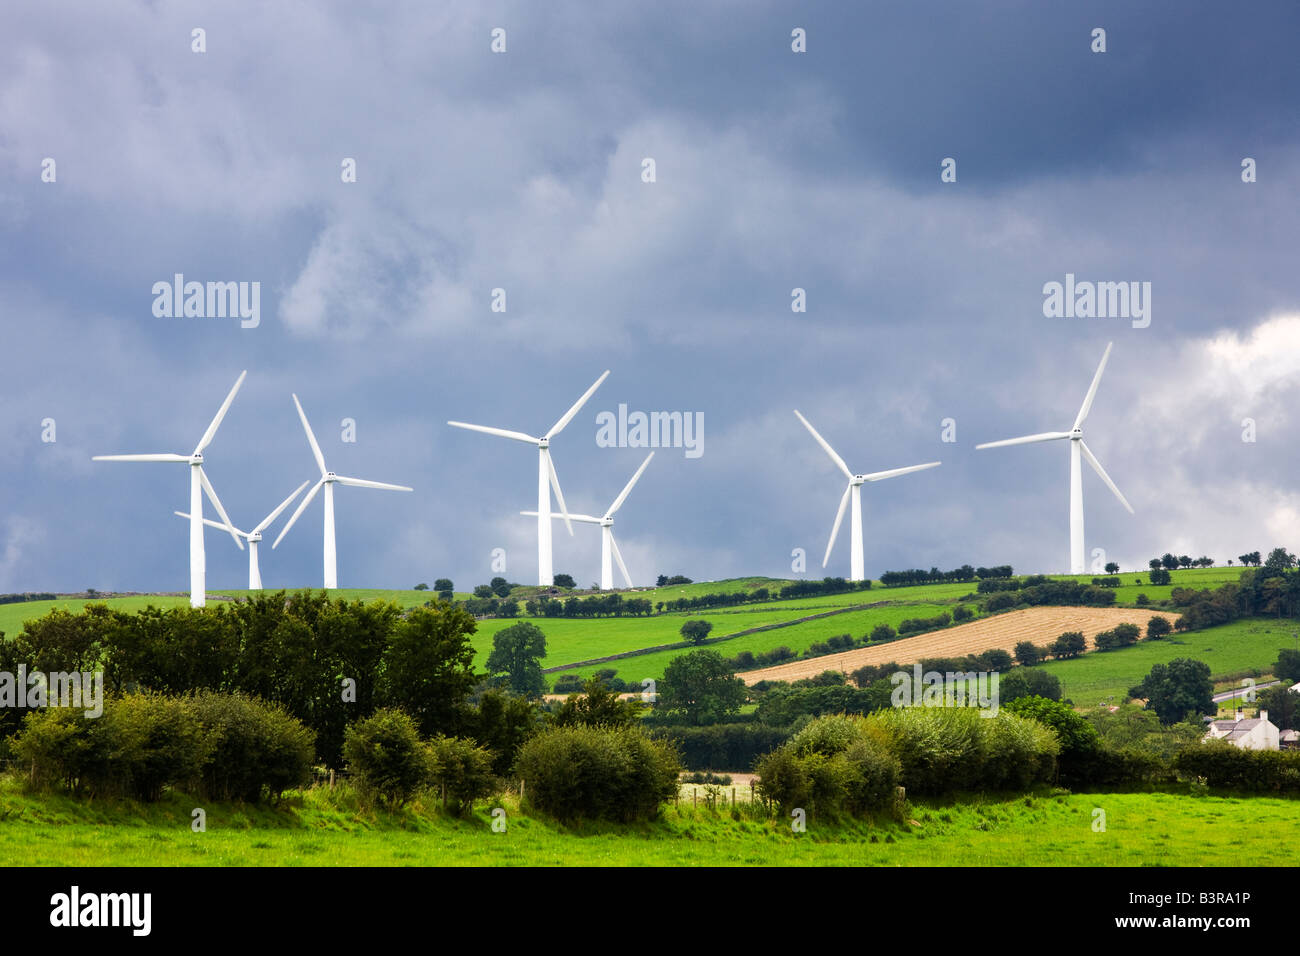 Rural wind farm with wind turbine installation in Cumbria, Lake District, England, UK - Stock Image